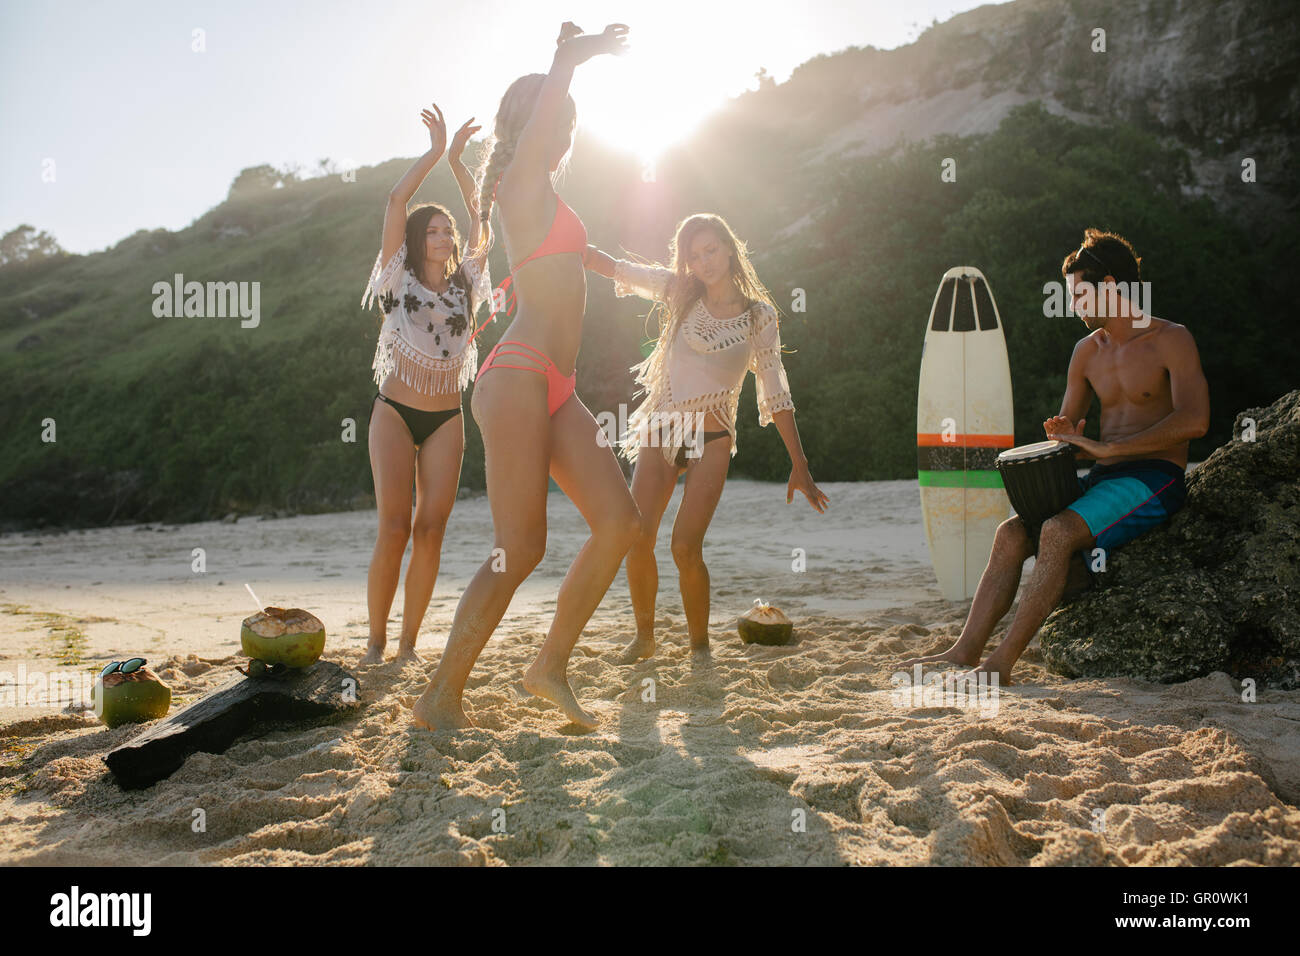 Group of young friends partying on the beach and dancing. Young people having fun at beach party, women dancing - Stock Image